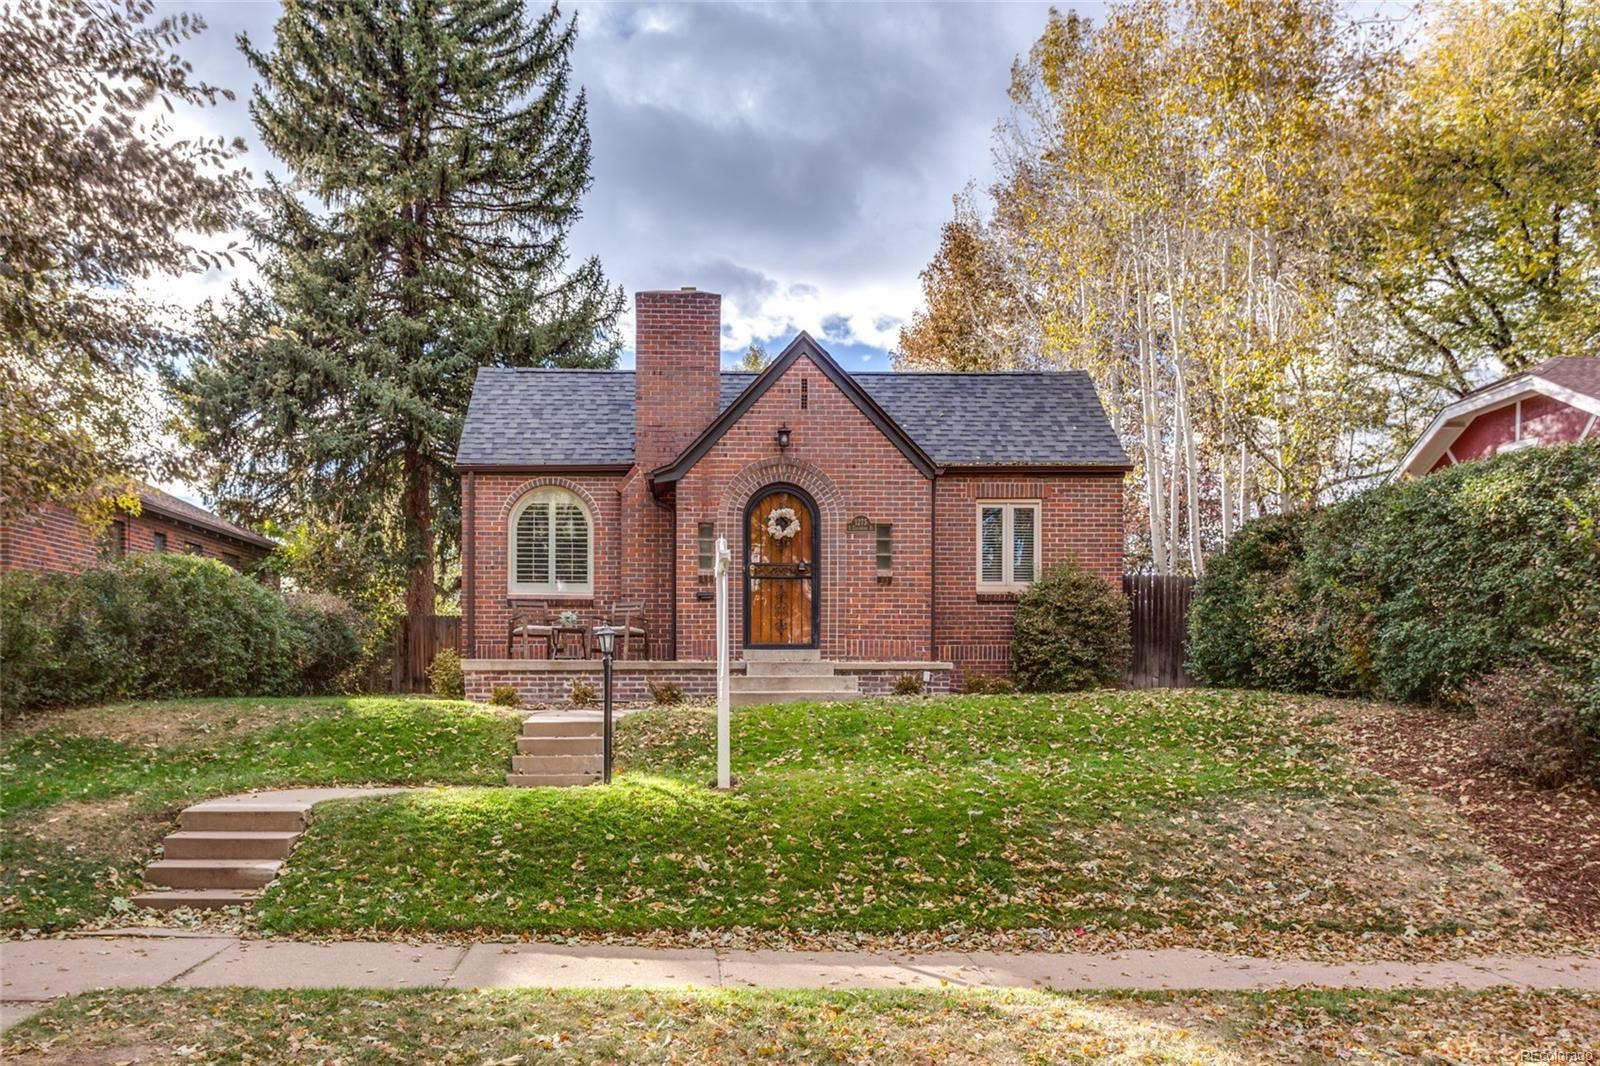 MLS# 7638978 - 1 - 1275 S Columbine Street, Denver, CO 80210